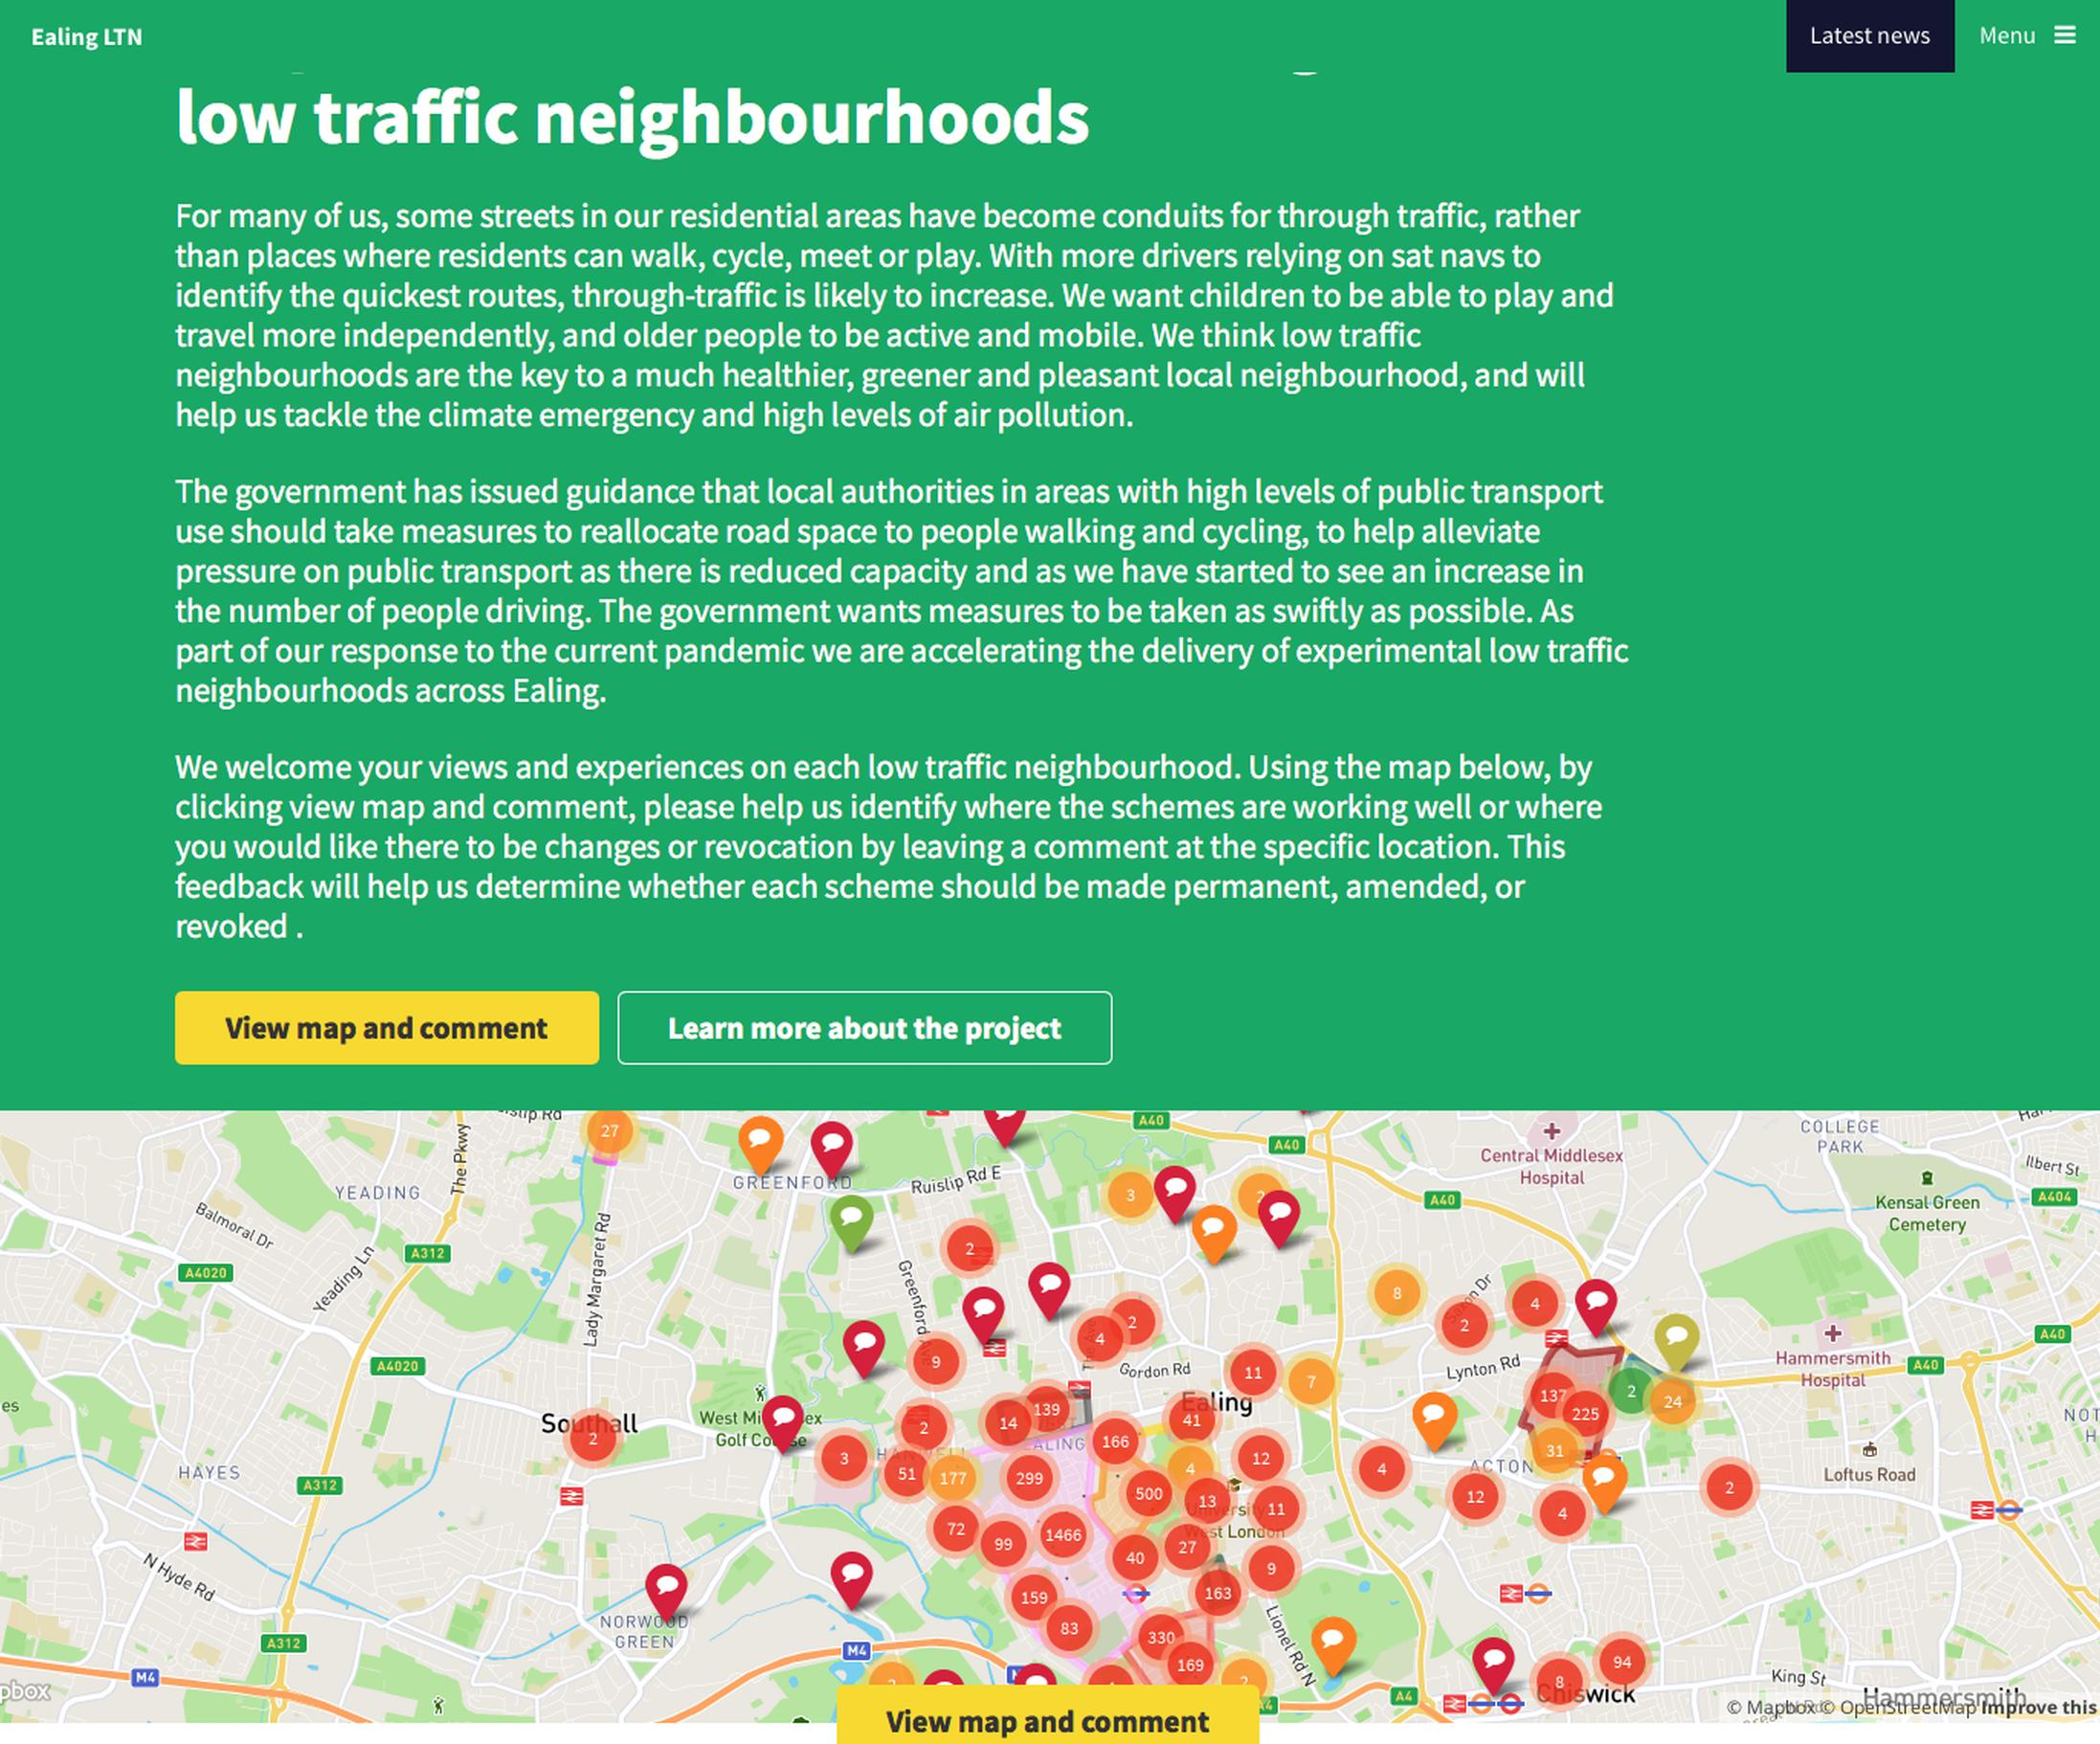 Ealing to enforce Low Traffic Neighbourhoods using cameras